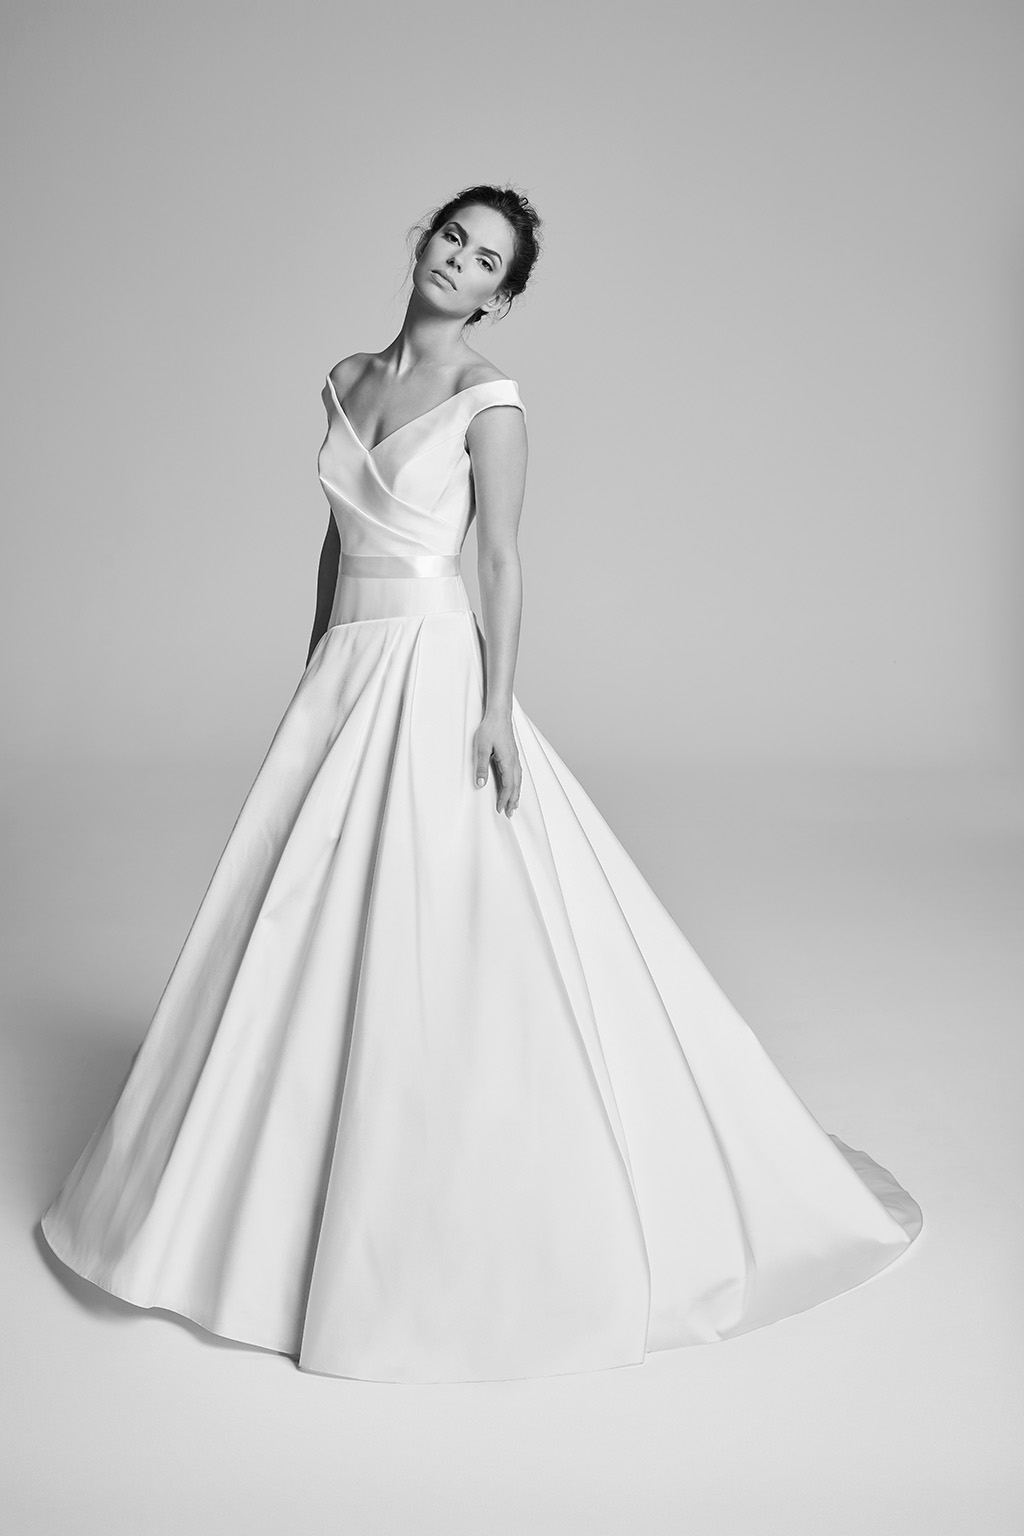 Cavetto suzanne neville for Designer wedding dresses uk